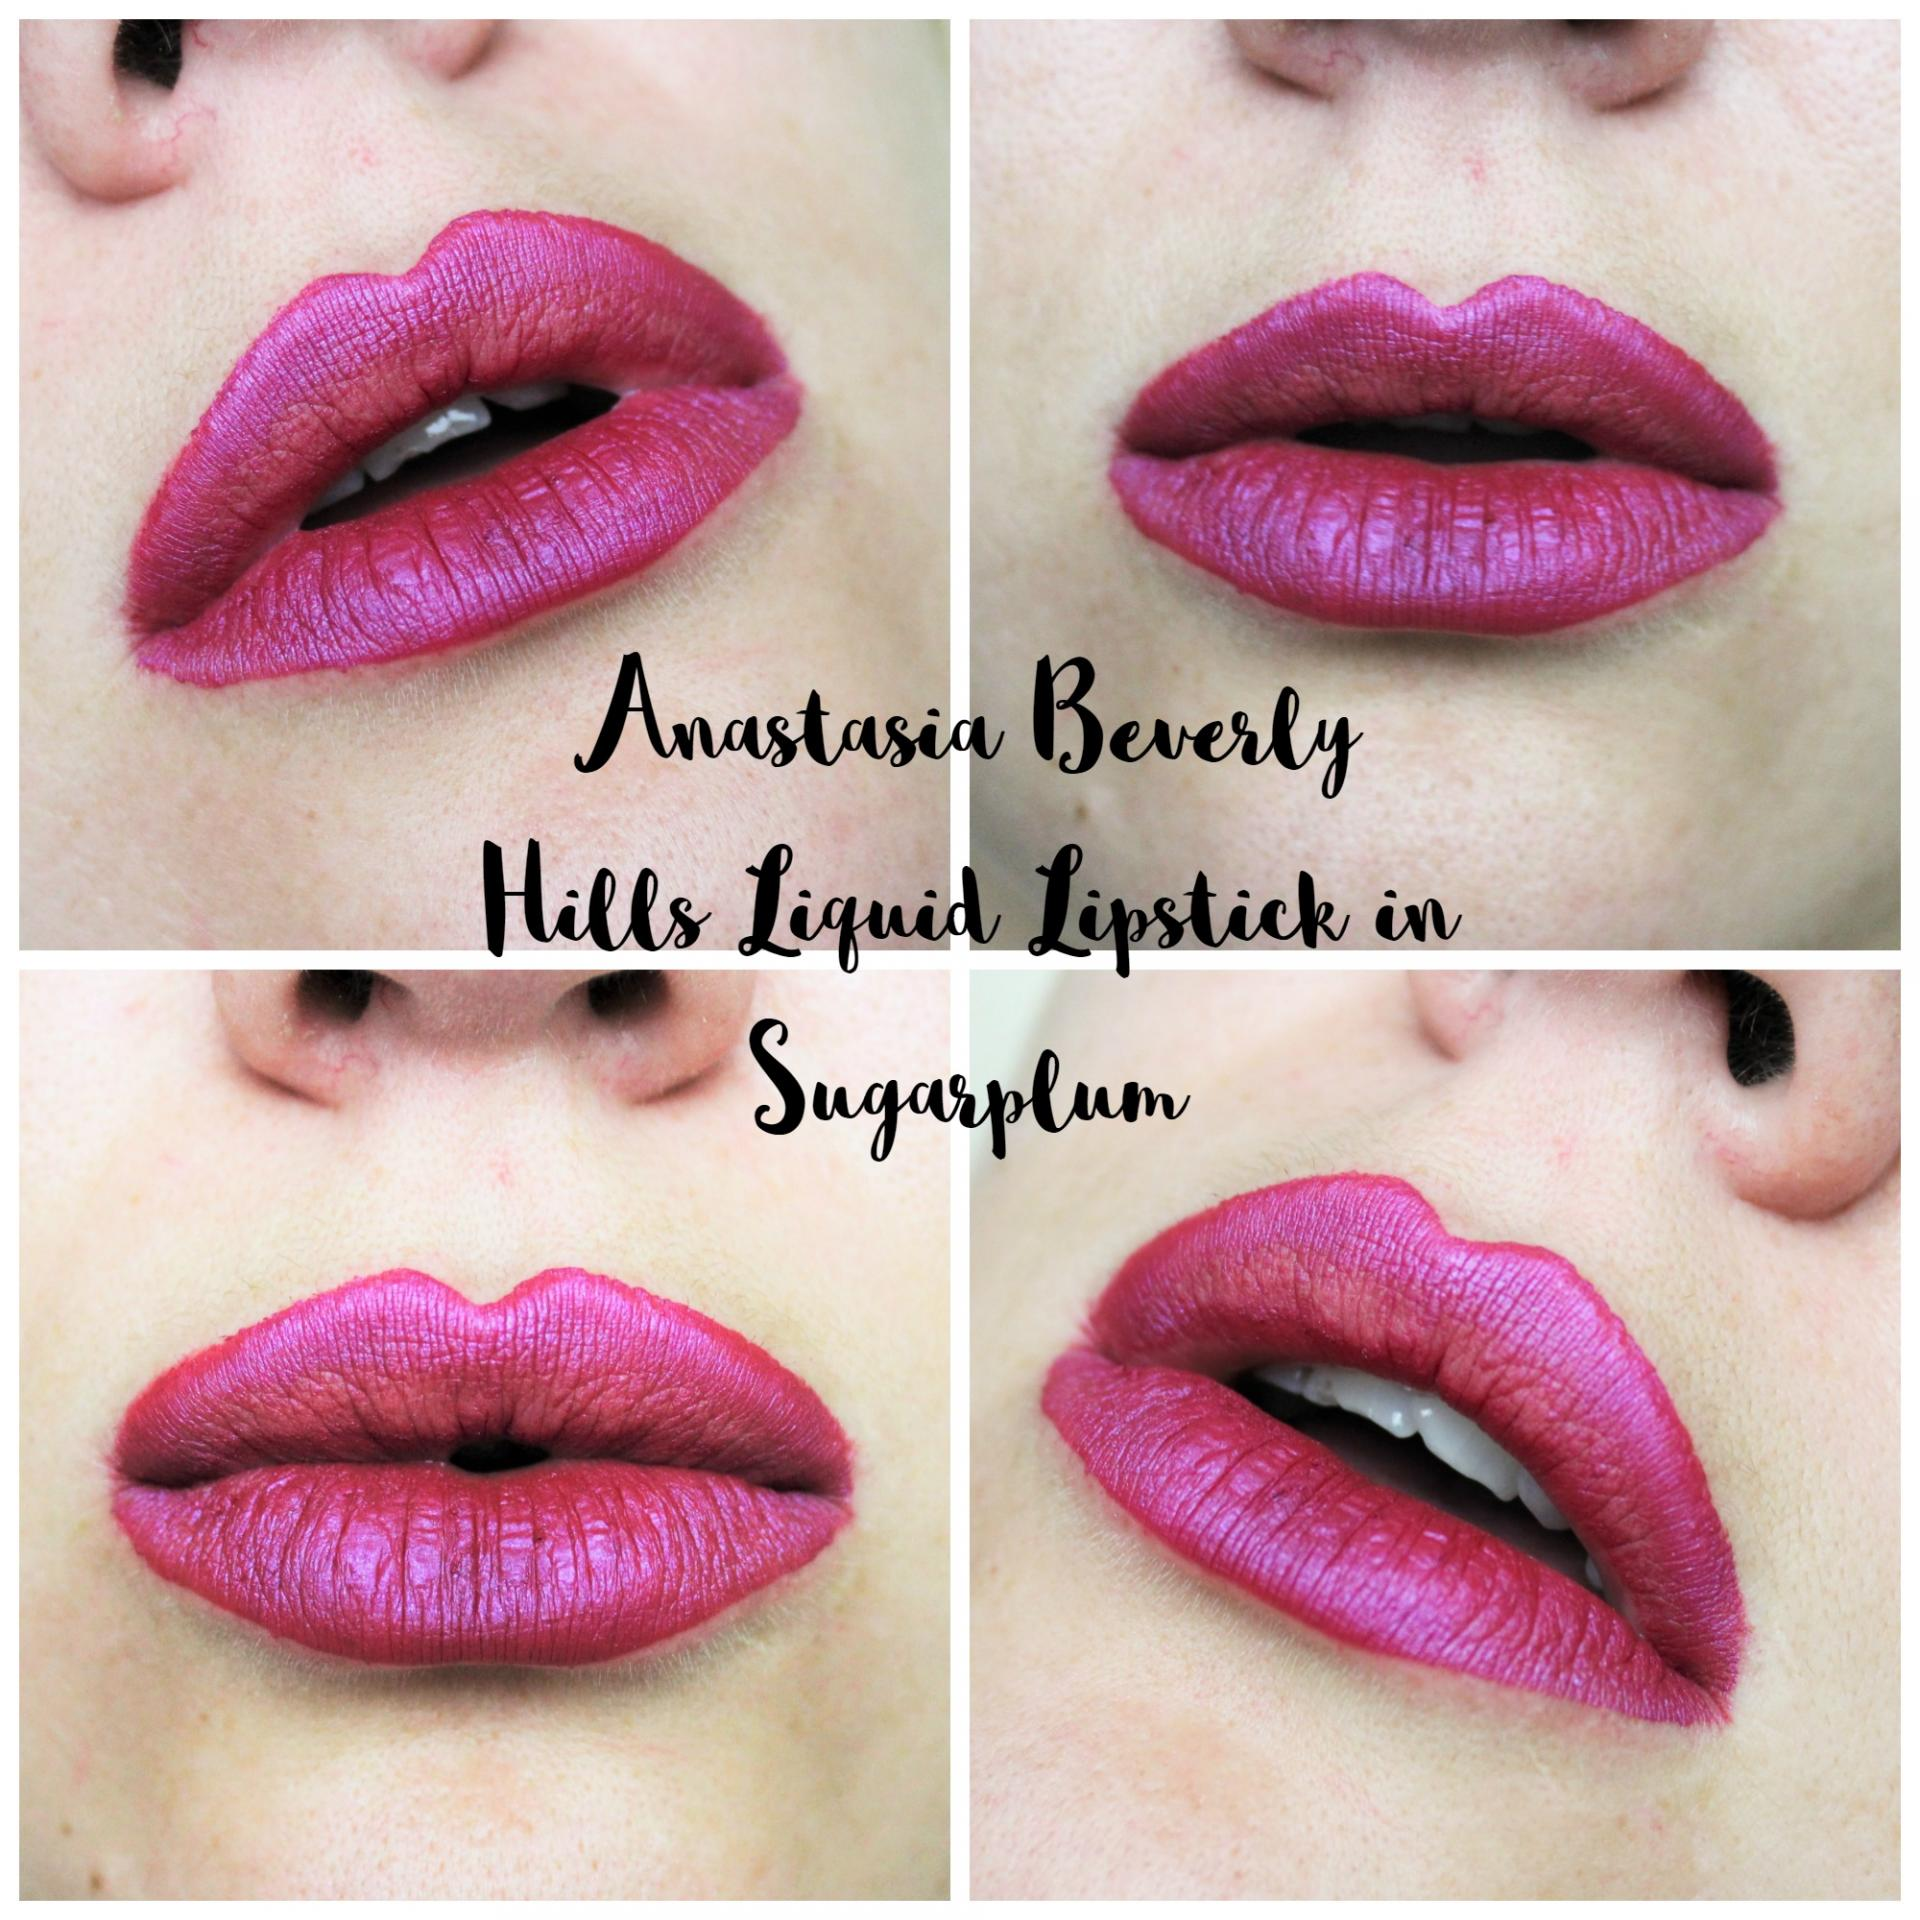 Anastasia Beverly Hills Liquid Lipstick in Sugarplum